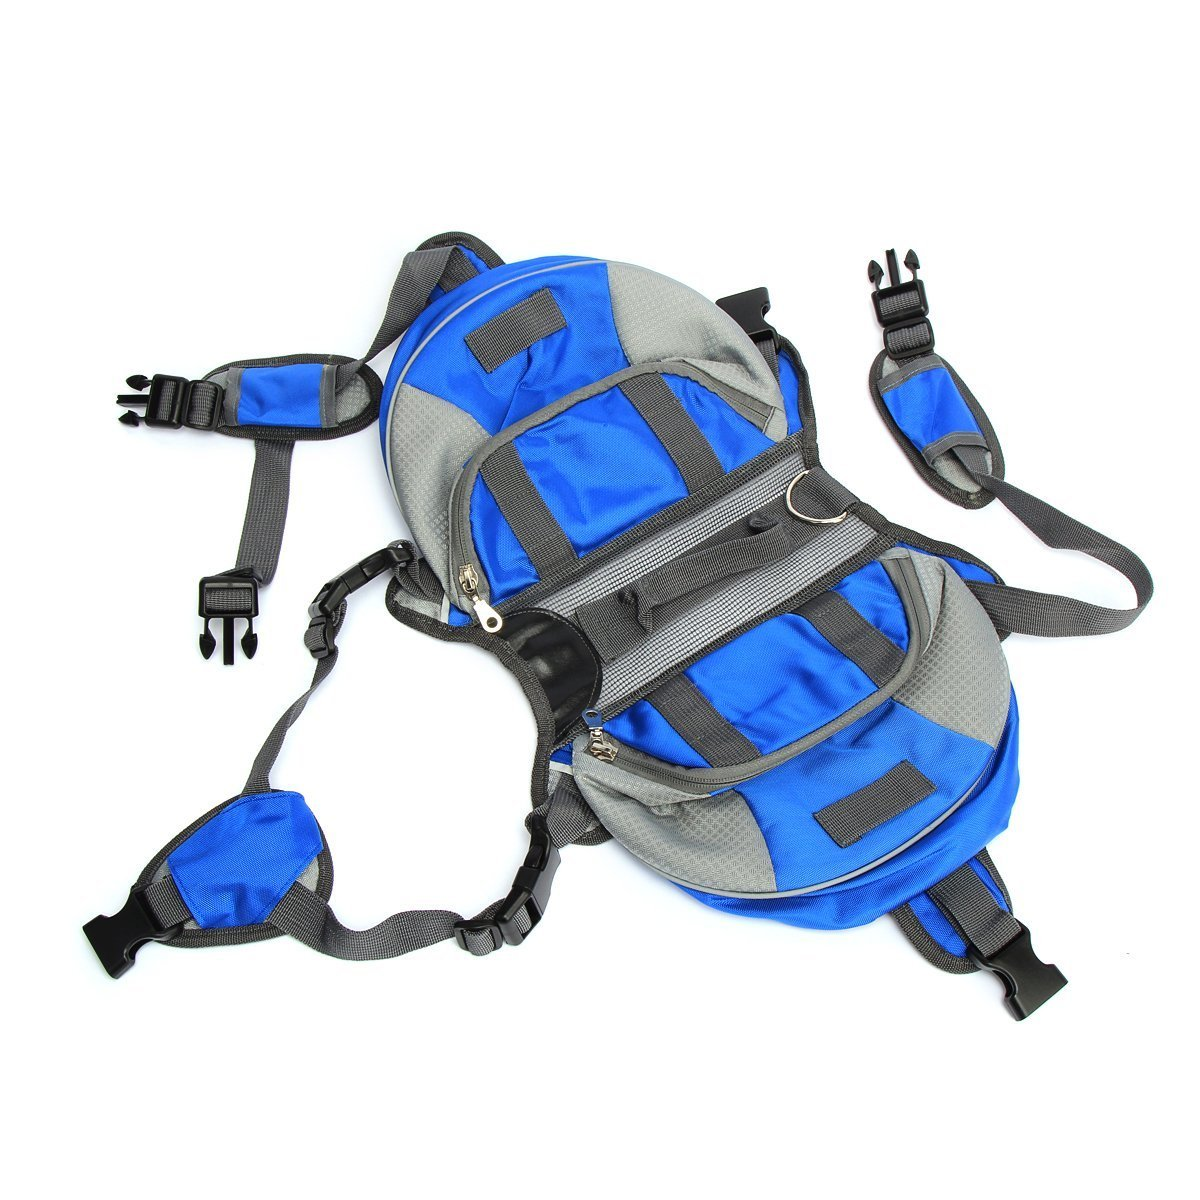 Adjustable Breathable Multifunction Oxford Pet Dog Backpack Quick Release Saddle Bag Outdoor Carrier Travel Hiking Camping (S/M/L Size) (blue, L)